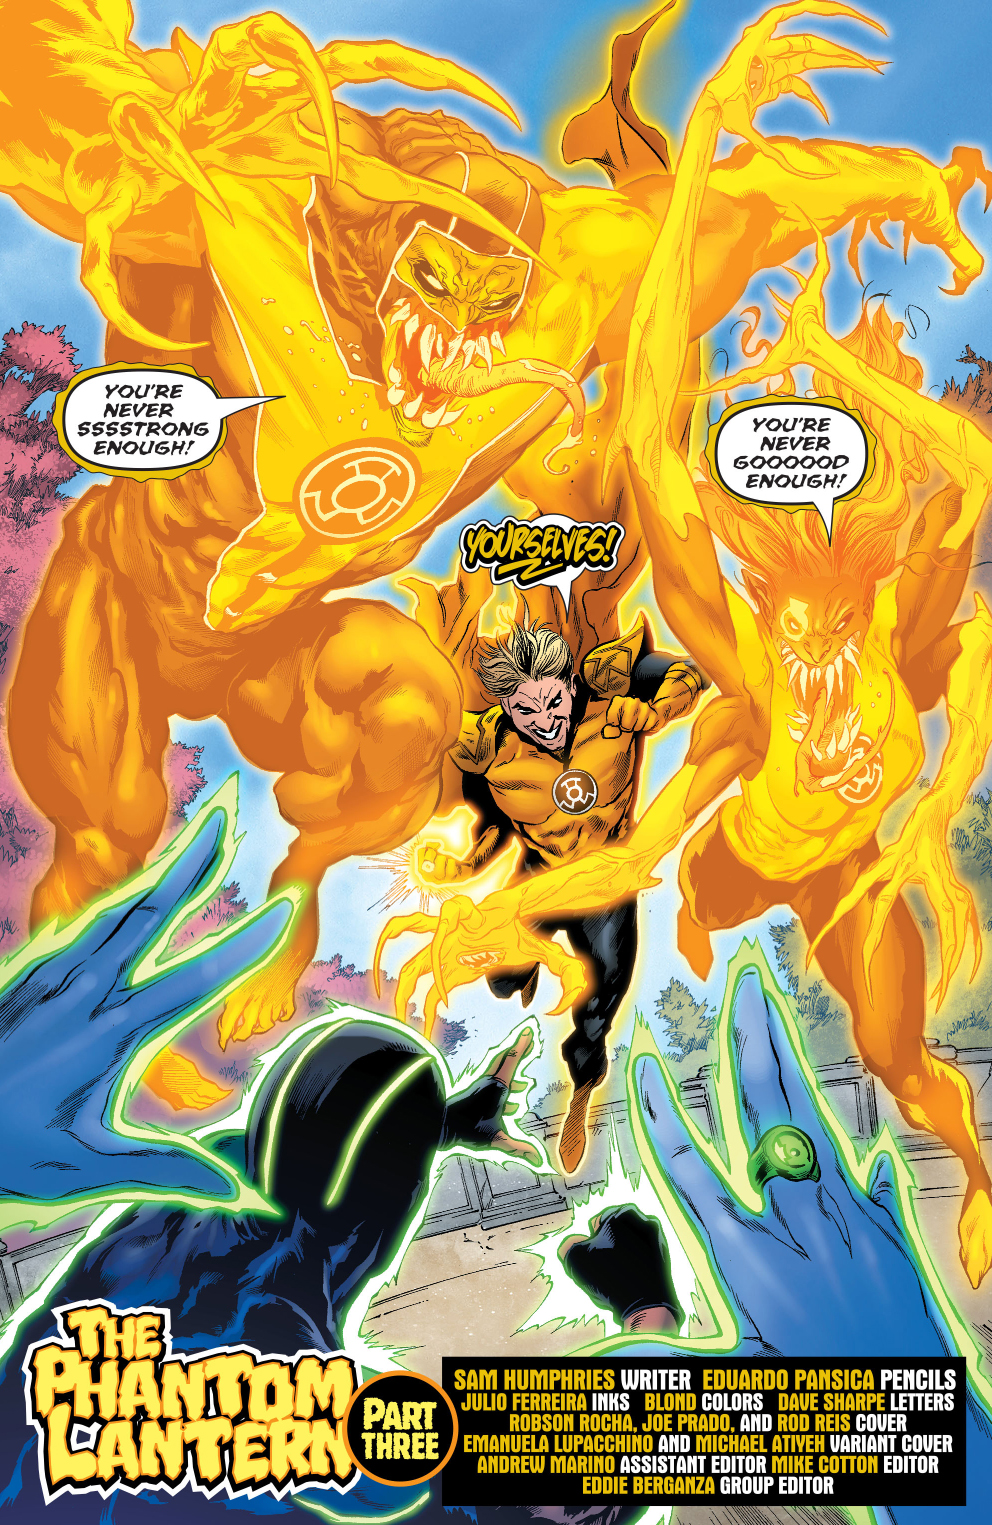 the-phantom-lantern-transforms-into-a-yellow-lantern